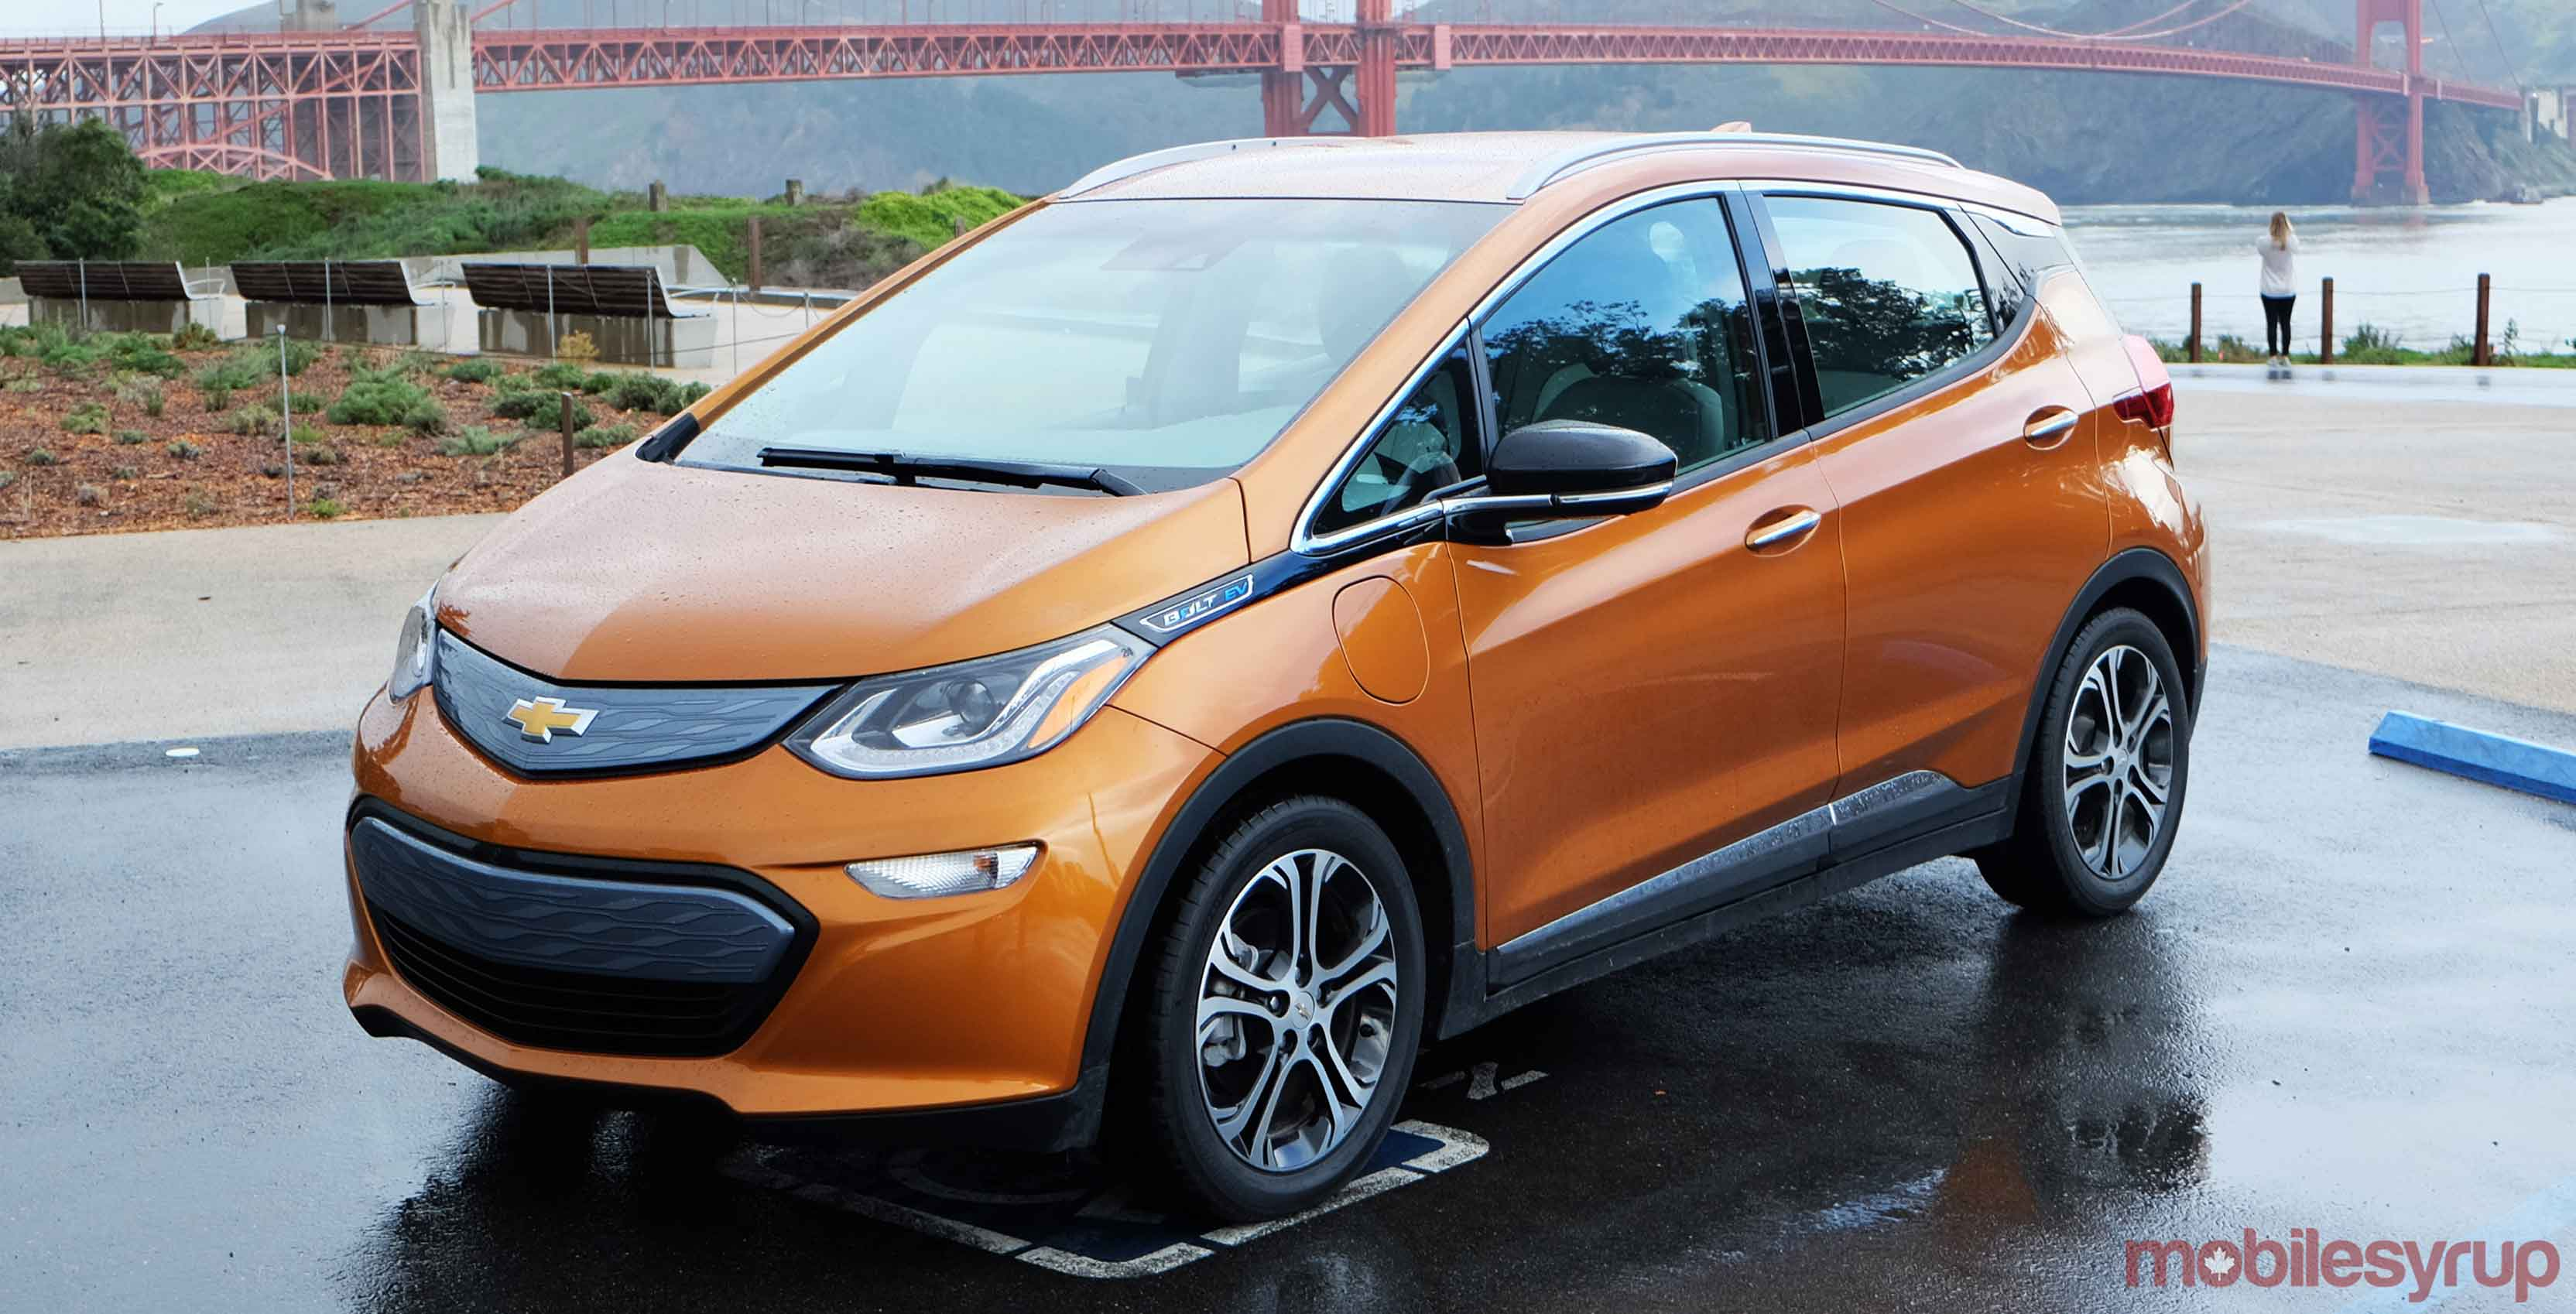 Chevrolet's 2020 Bolt EV can outperform Tesla, Hyundai in range longevity